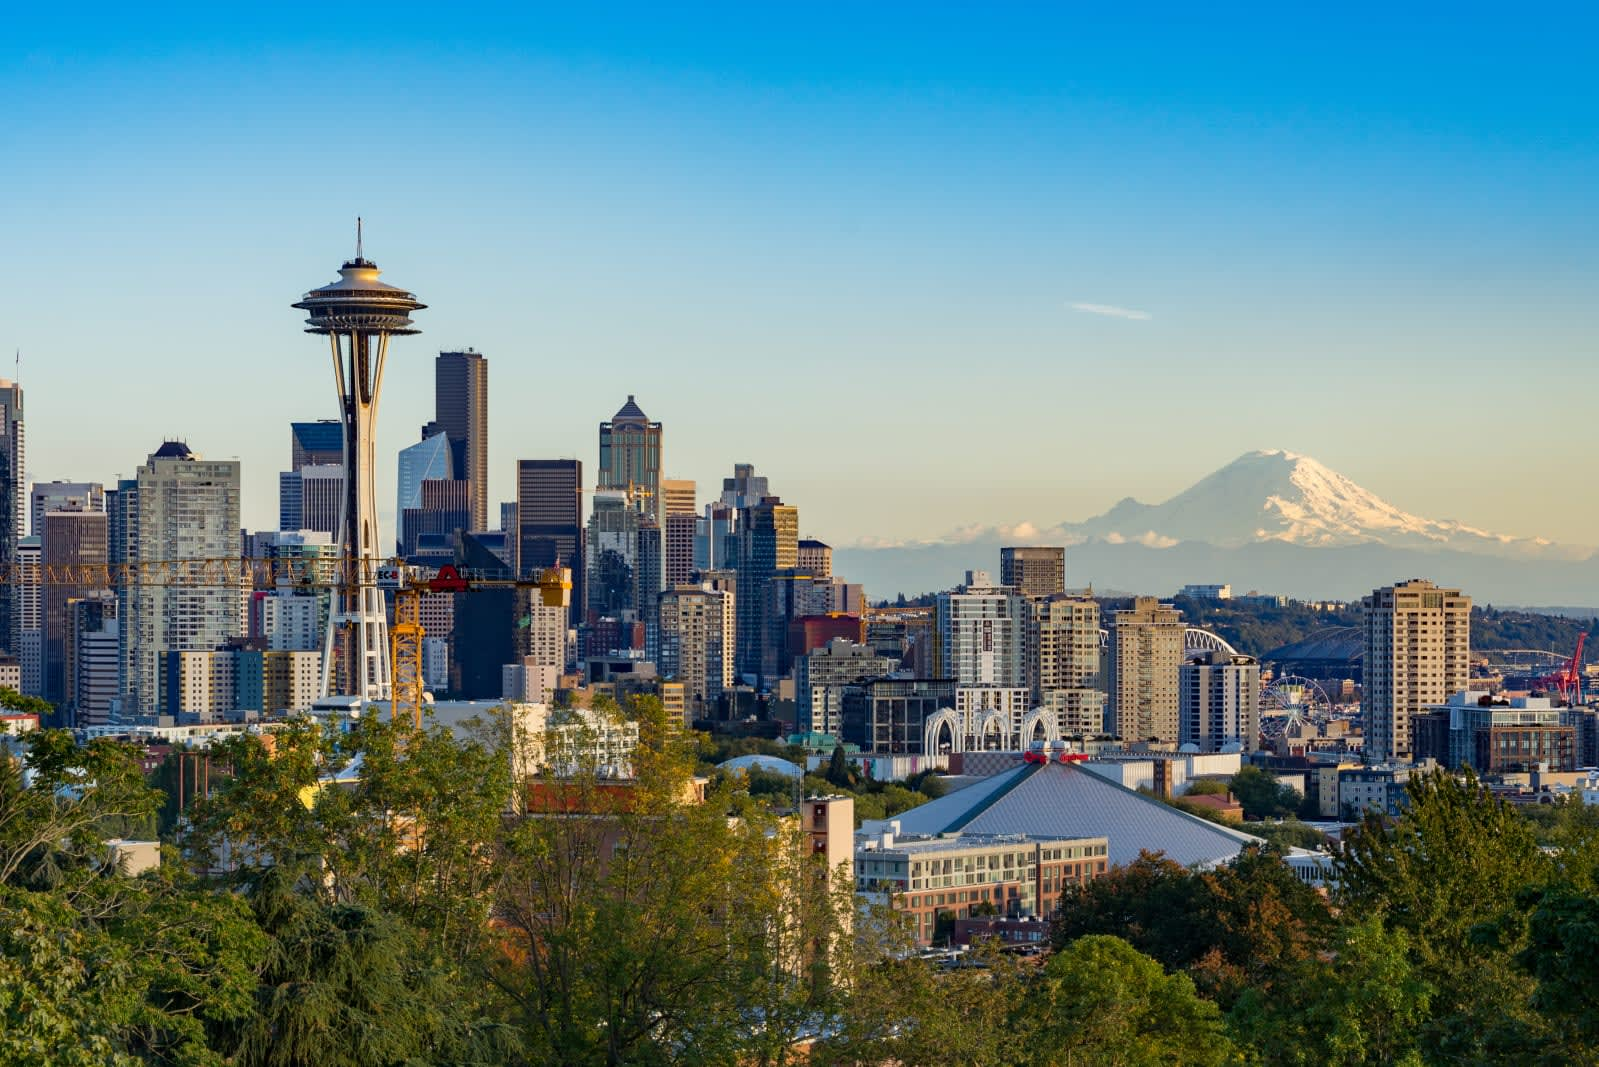 Seattle-area election will let residents vote by smartphone